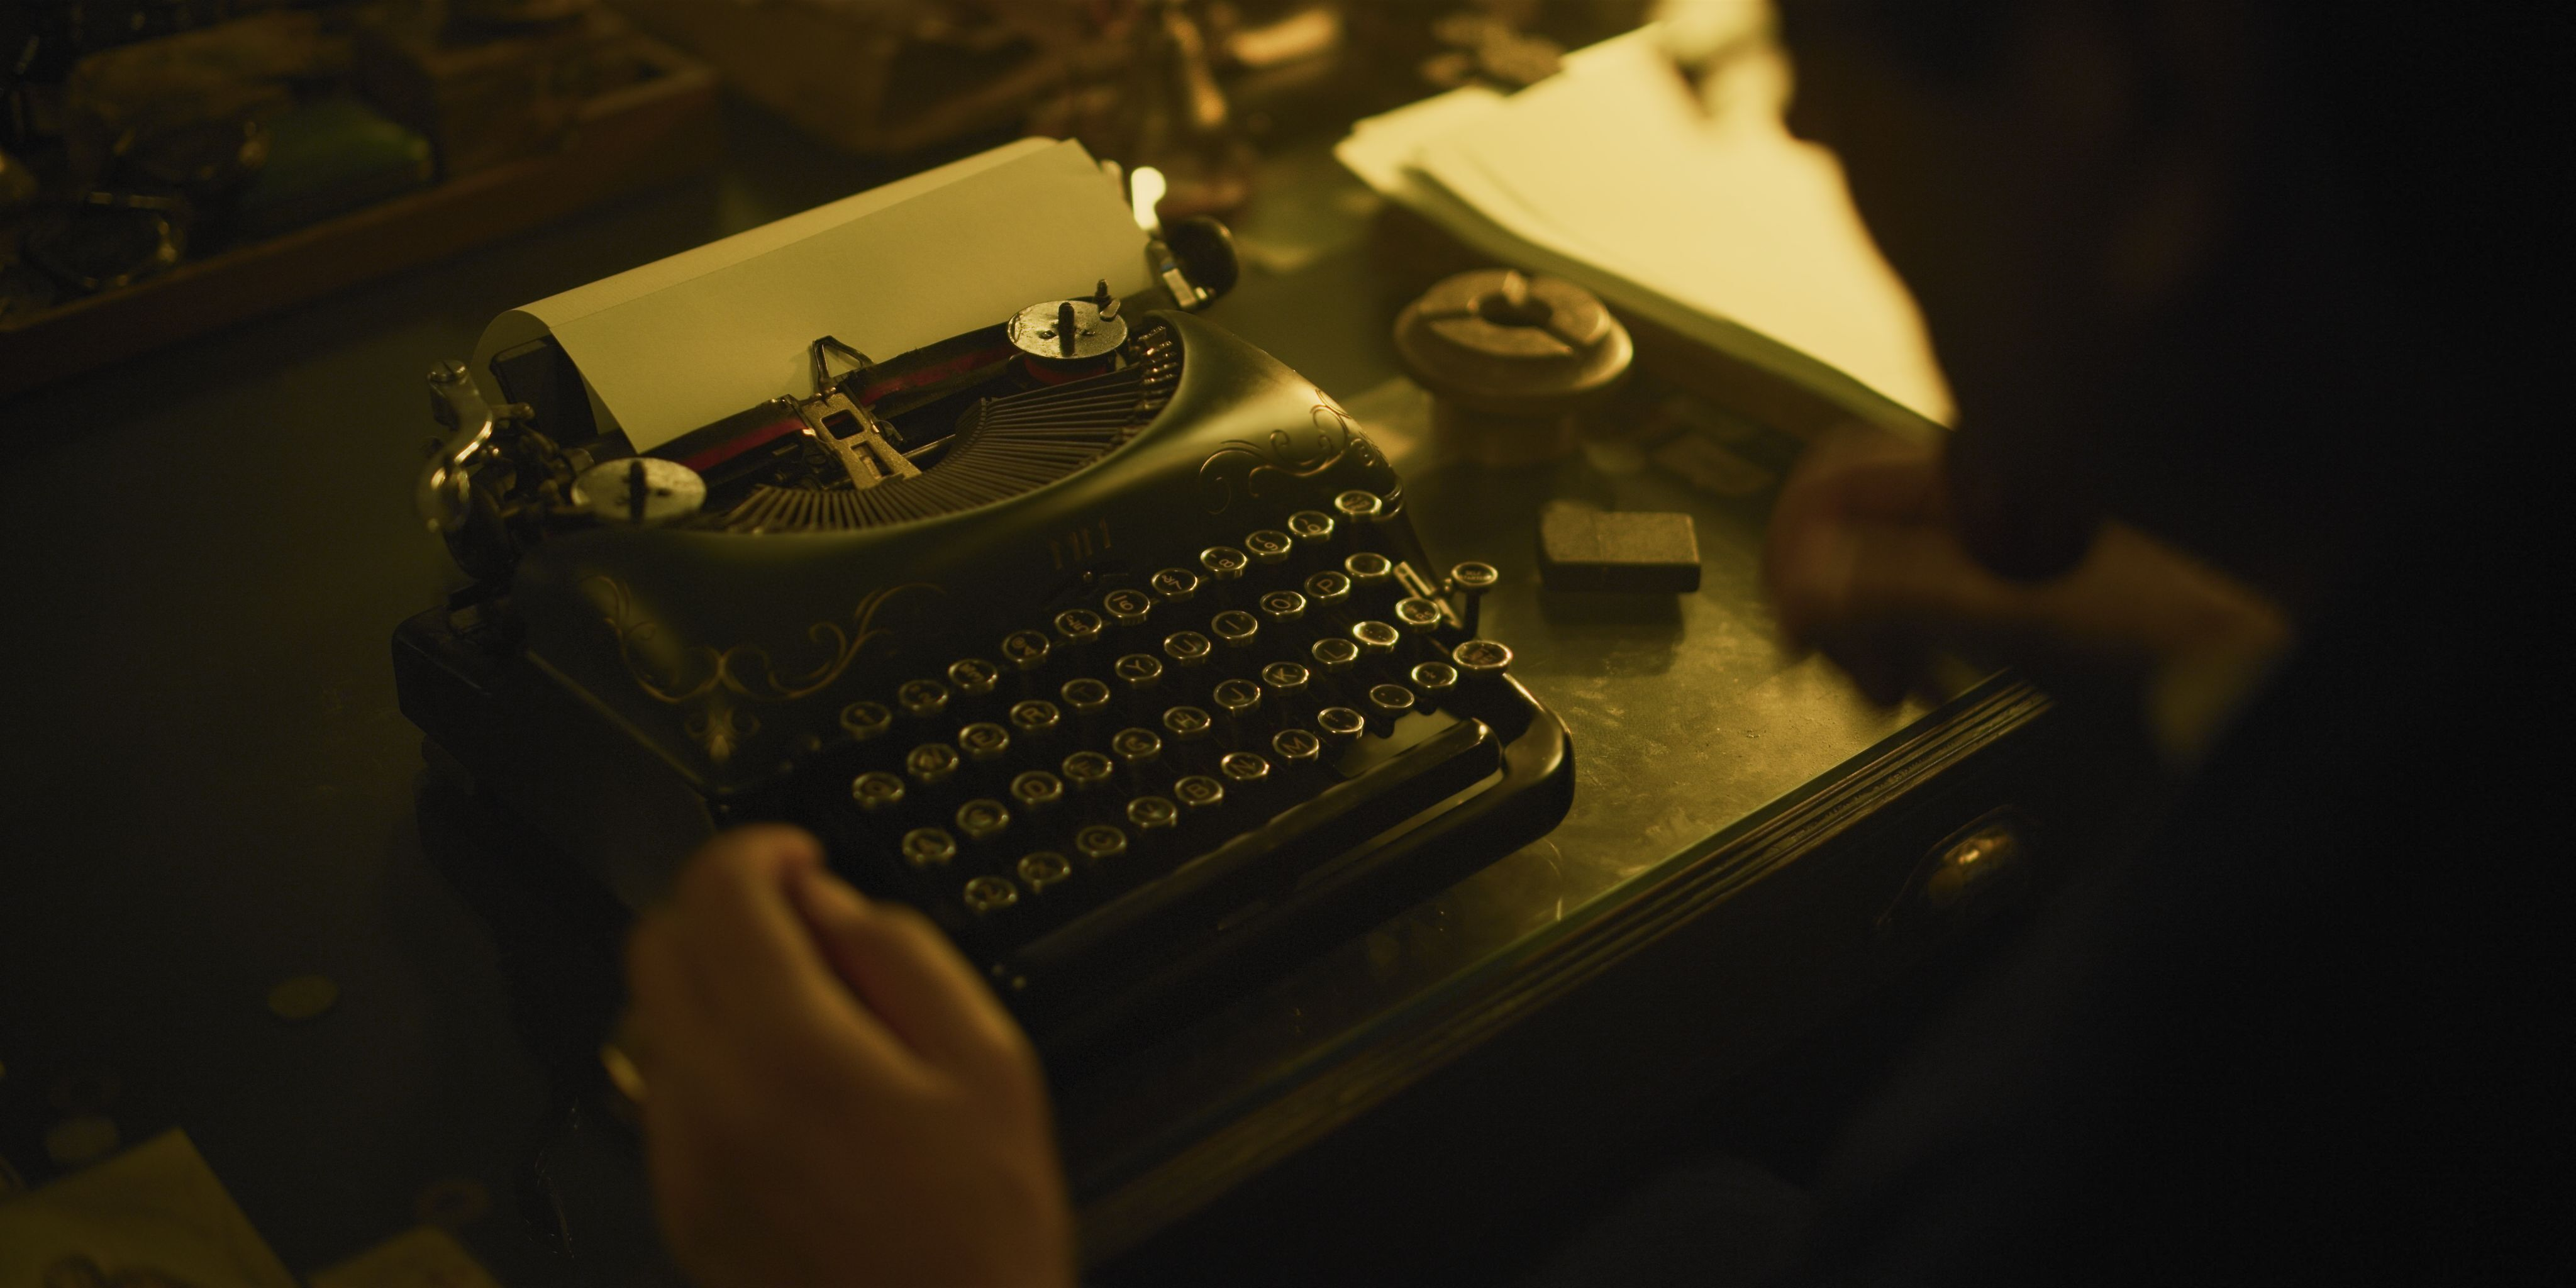 Typewriter season 2: 5 questions the Netflix series needs to answer